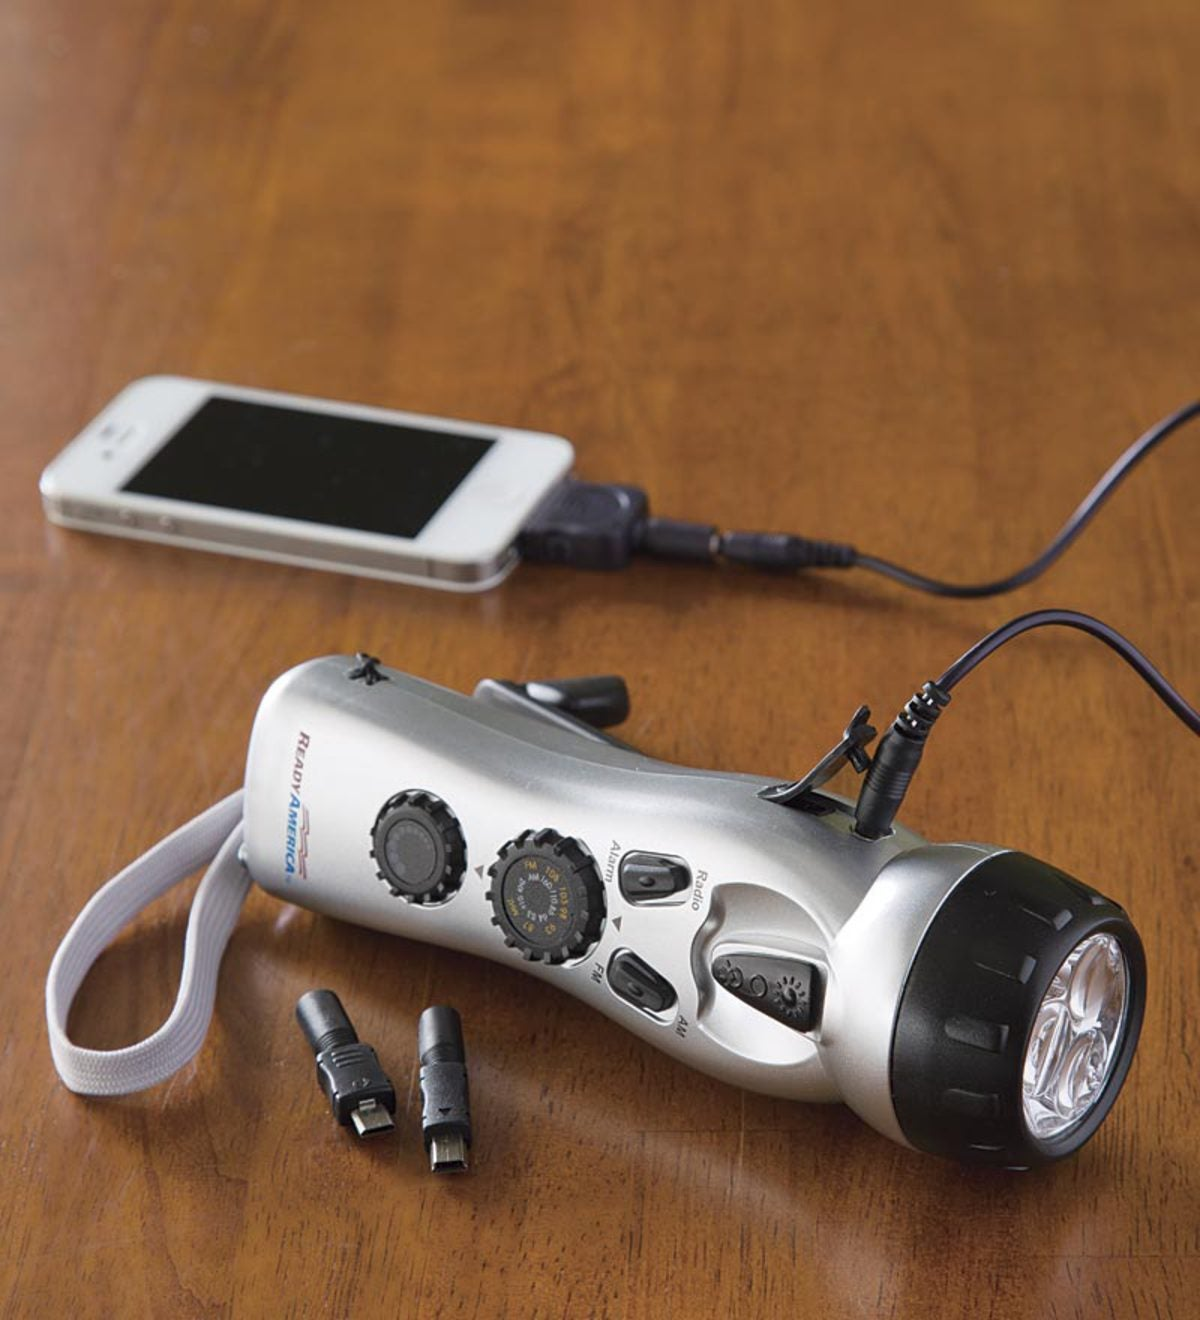 Hand-Crank Emergency Power Station with Light, Radio and USB Charging Port